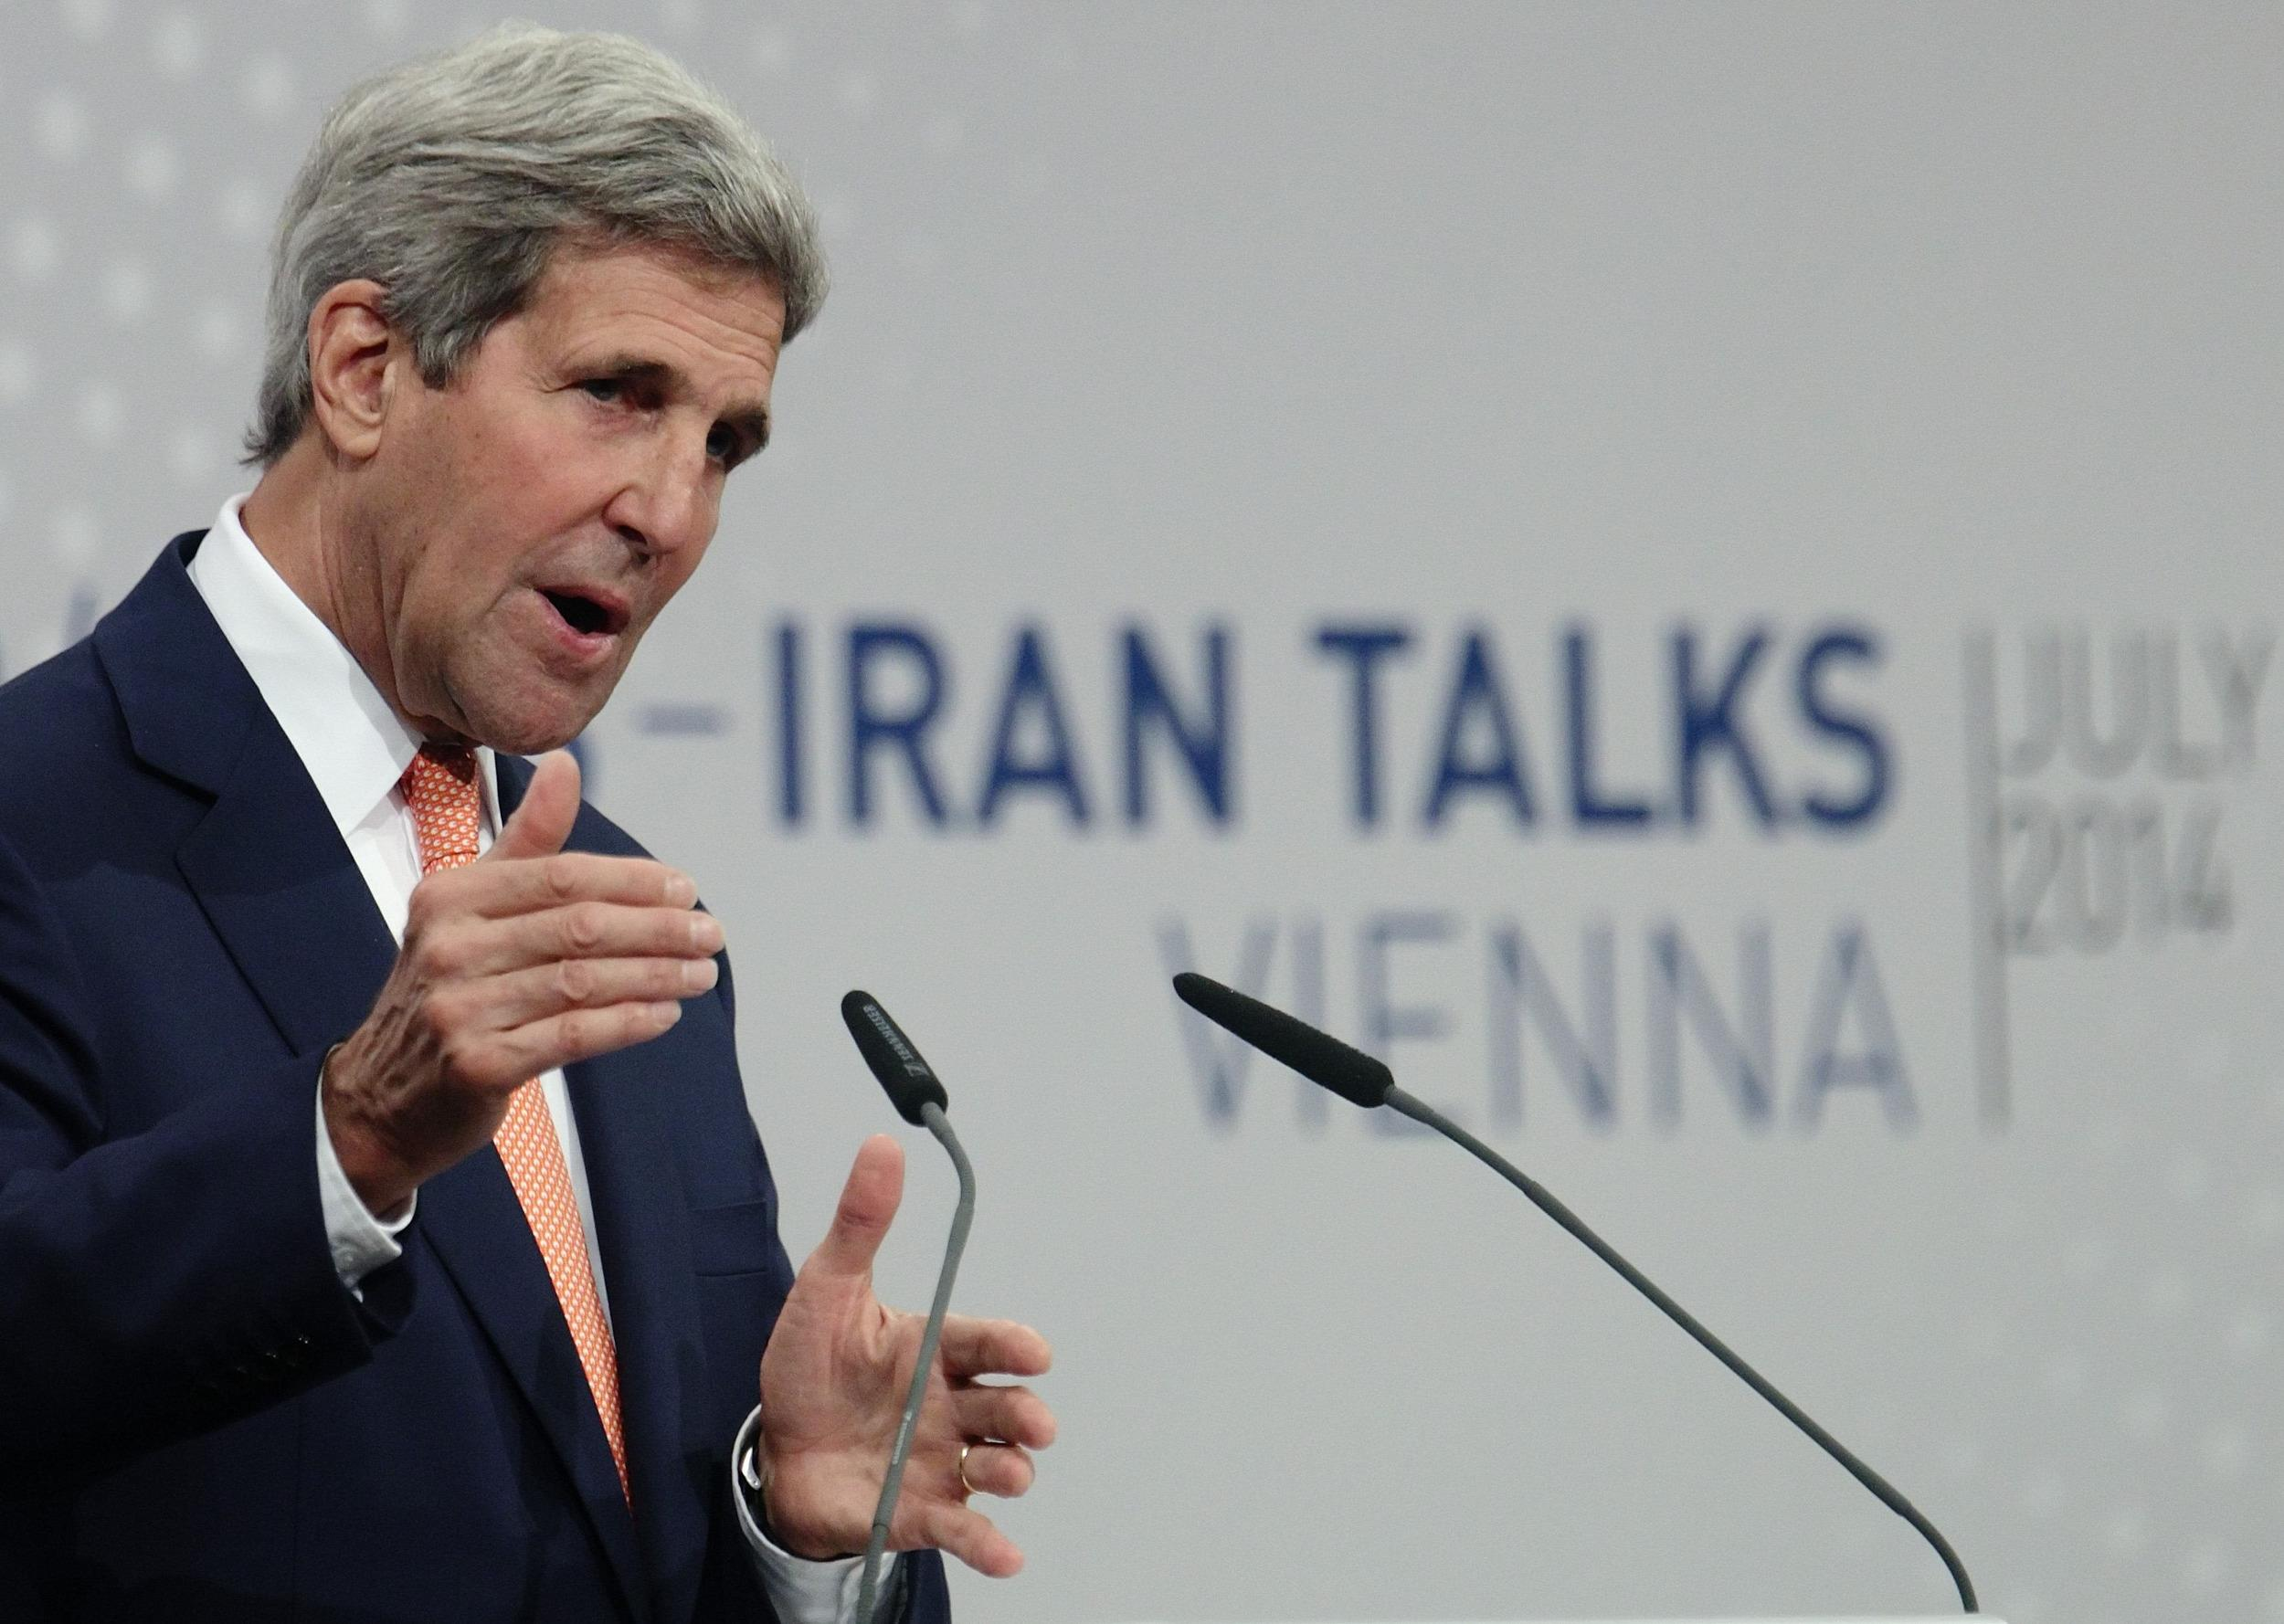 Image: U.S. Secretary of State John Kerry speaks during a news conference in Vienna